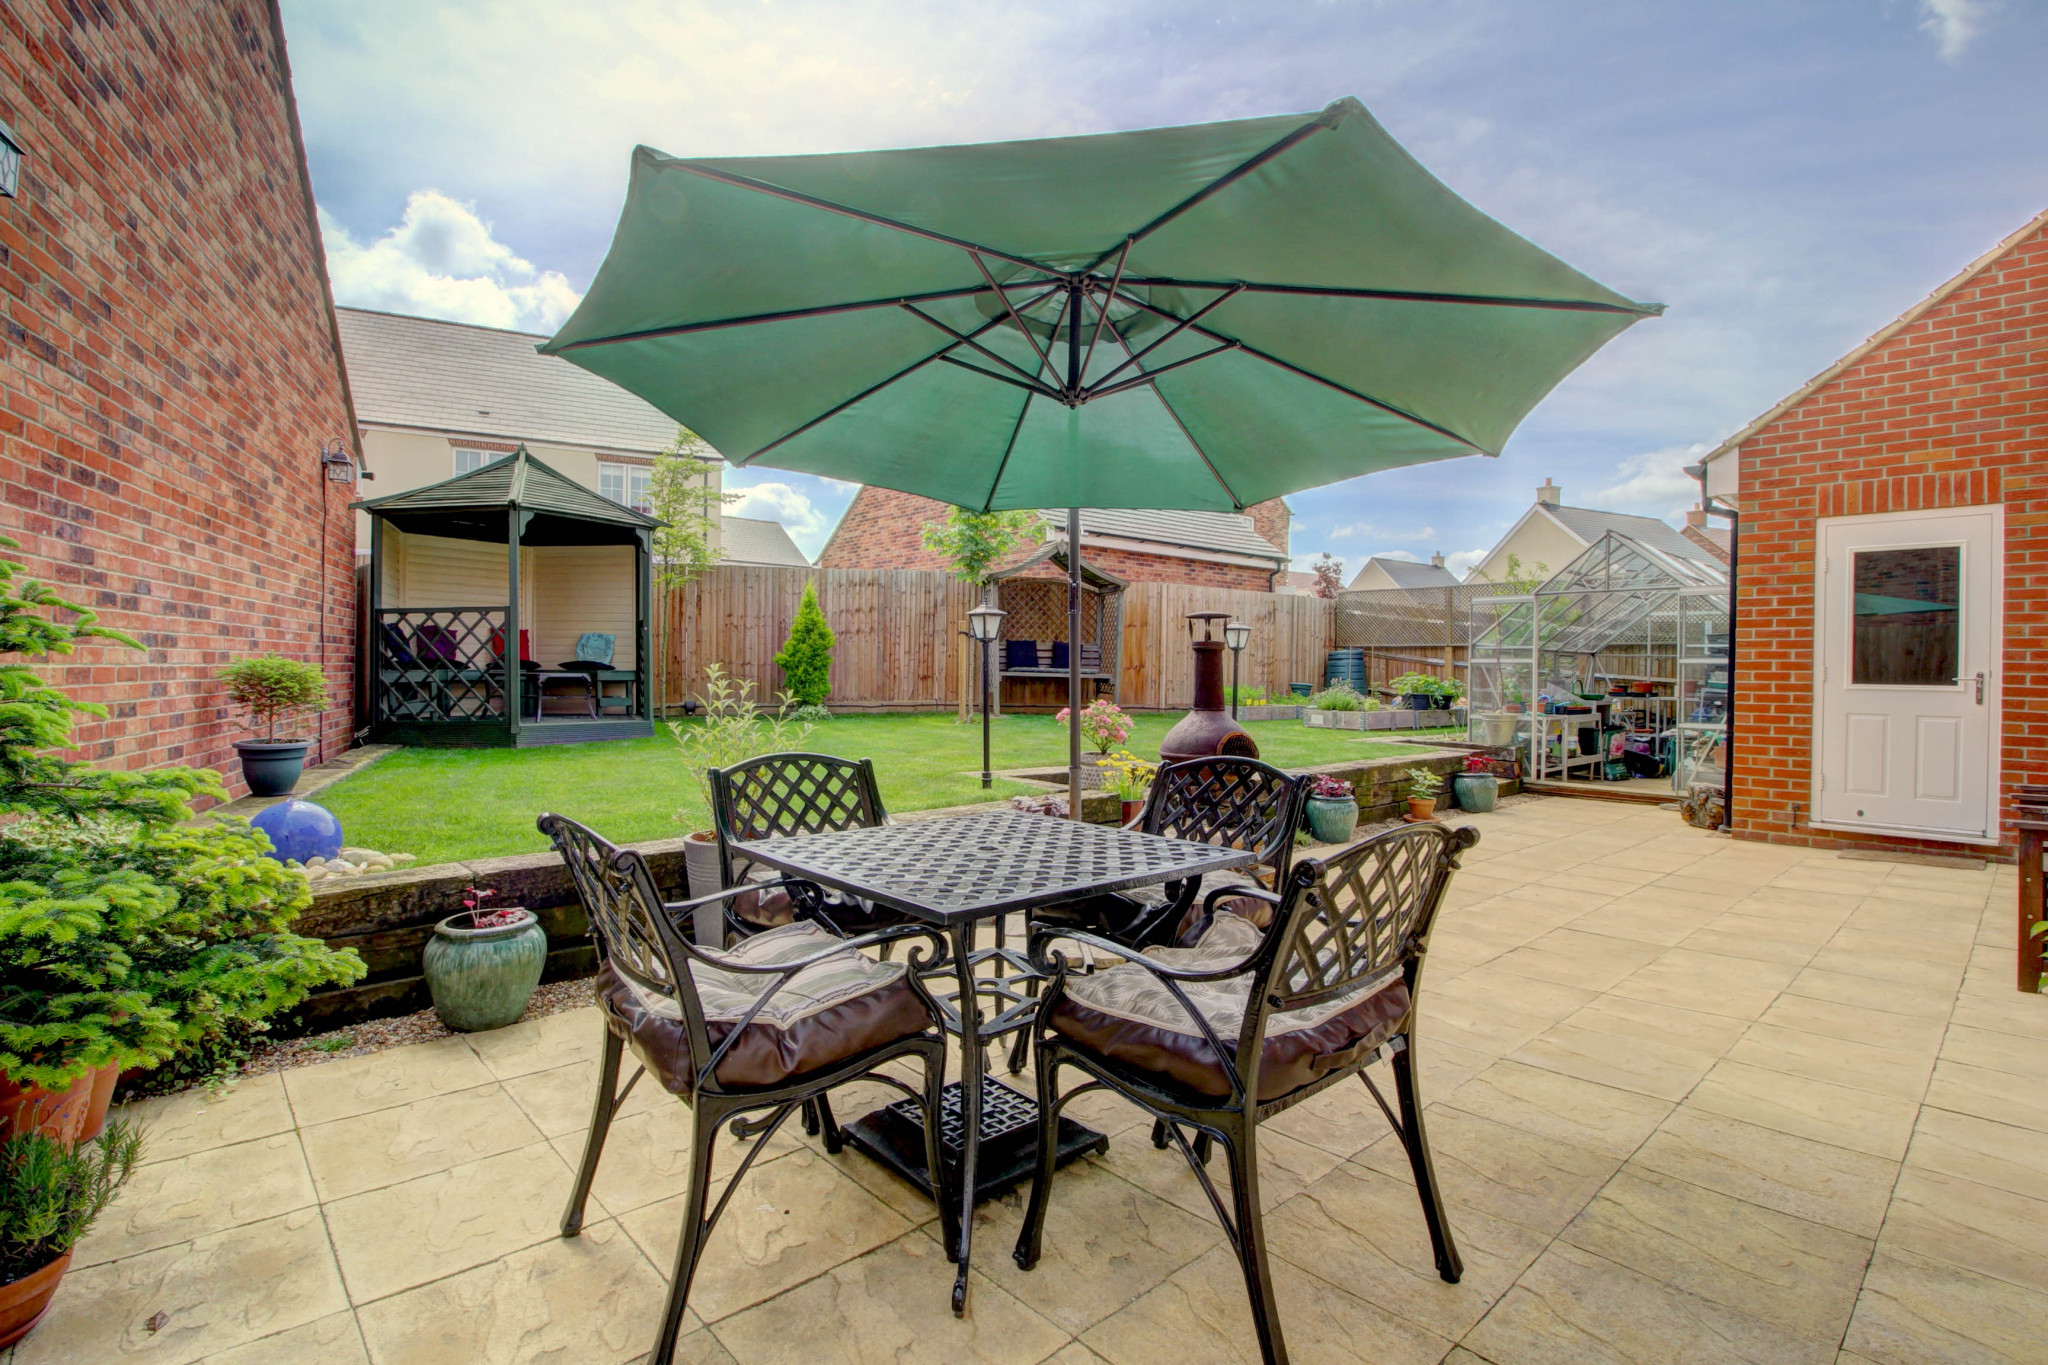 Famous Property For Sale On Eight Acres, Cranfield, Bedford Intended For Flitwick Market Umbrellas (View 5 of 20)